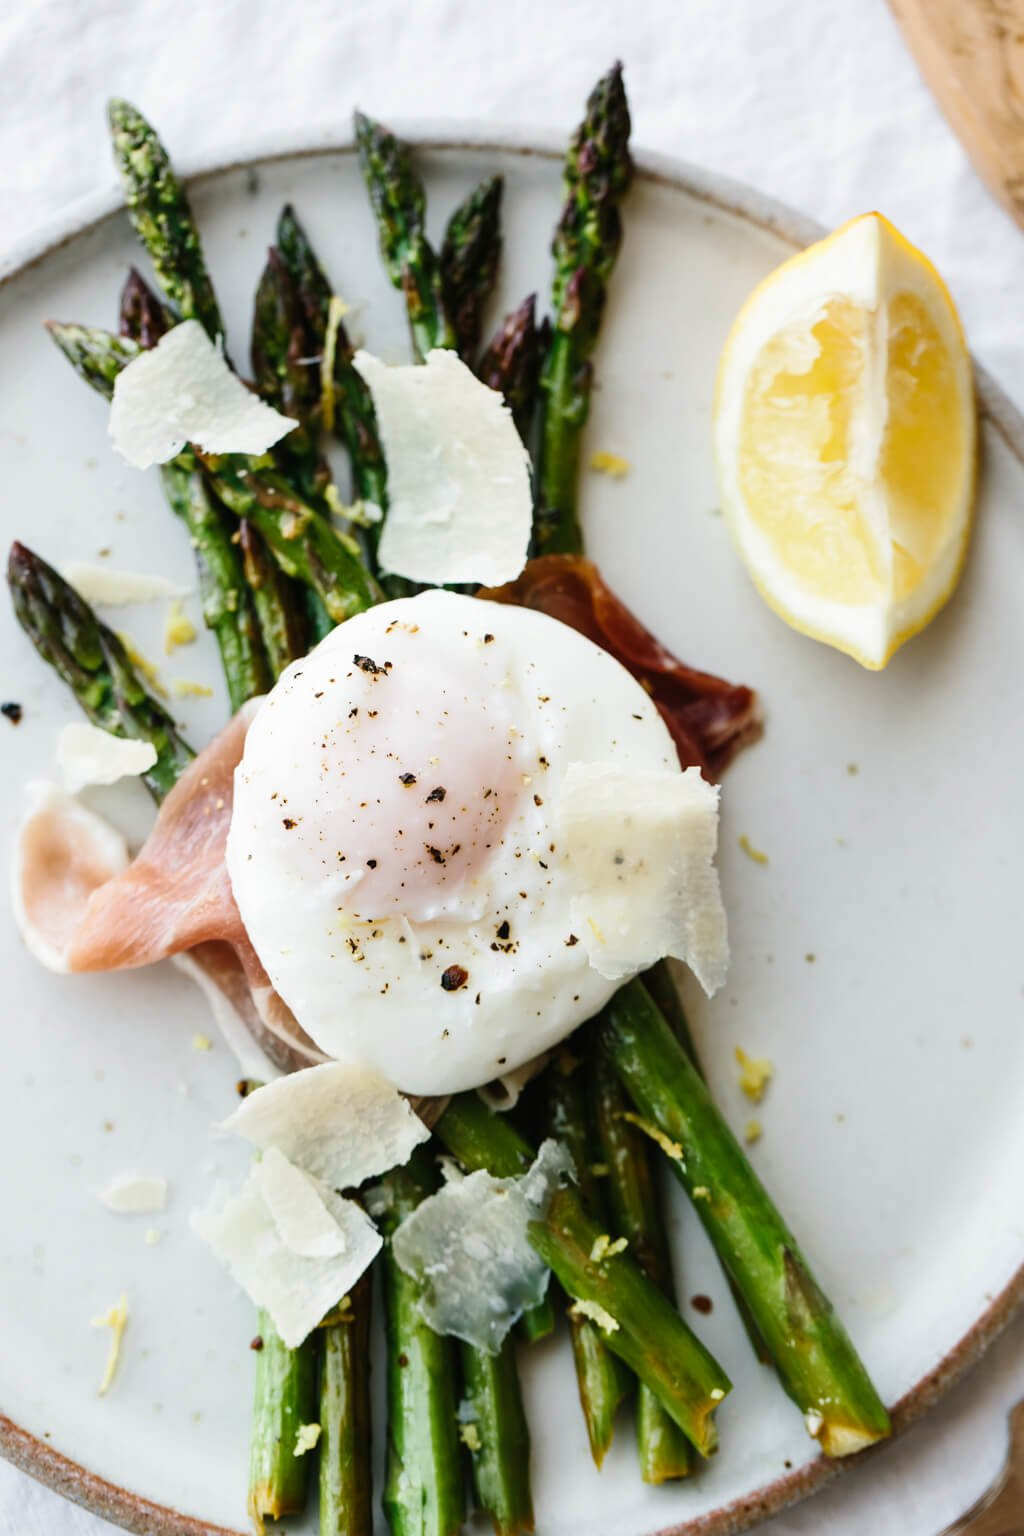 Breakfast doesn't get much better than garlic sautéed asparagus topped with prosciutto, a perfectly poached egg and a few shavings of parmesan.